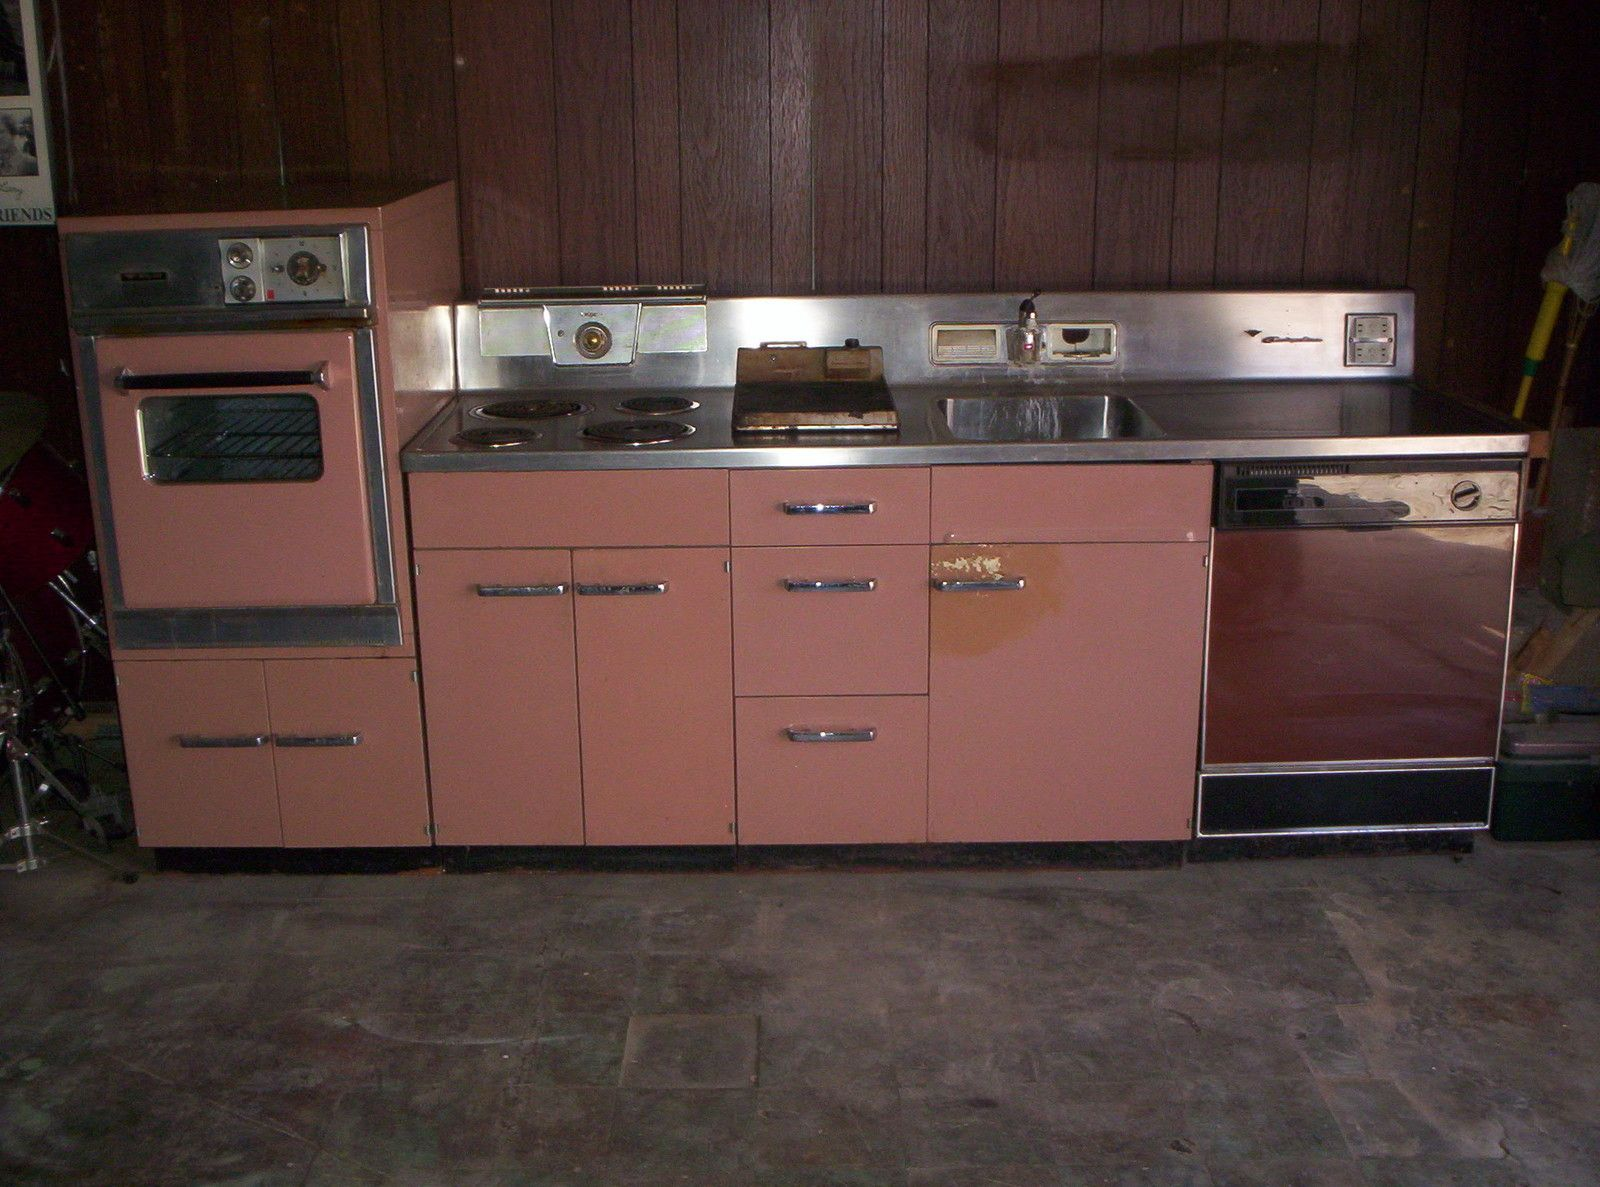 Hotpoint Customline Modular Metal Kitchen Cabinet Stove Dw Sink Metal Kitchen Cabinets Metal Kitchen Kitchen